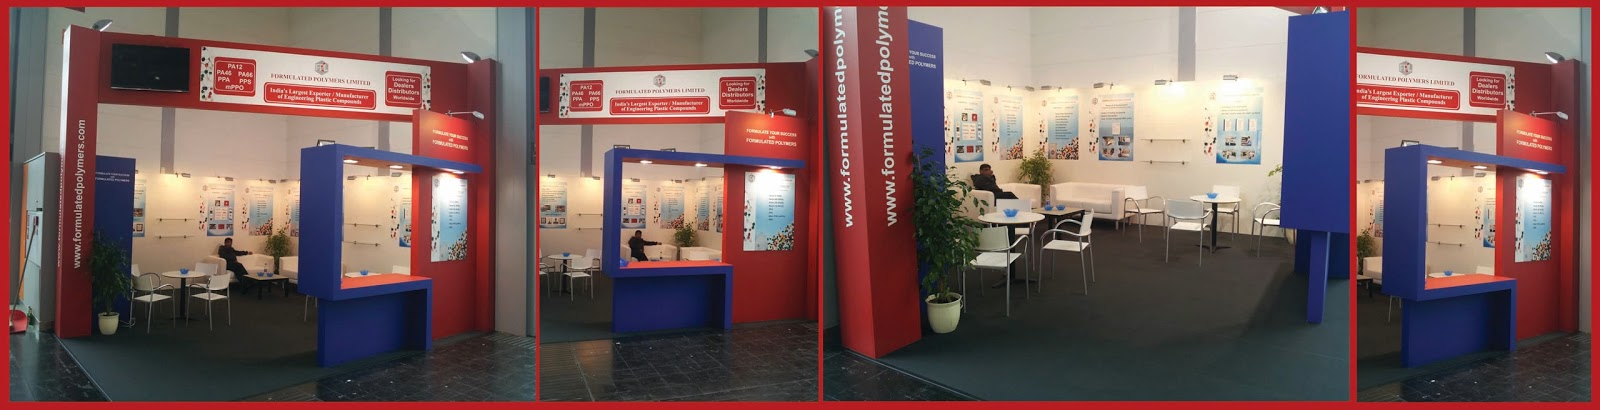 Exhibition Stand Design And Build Germany : Studio one designs pvt ltd exhibition stand design gallery